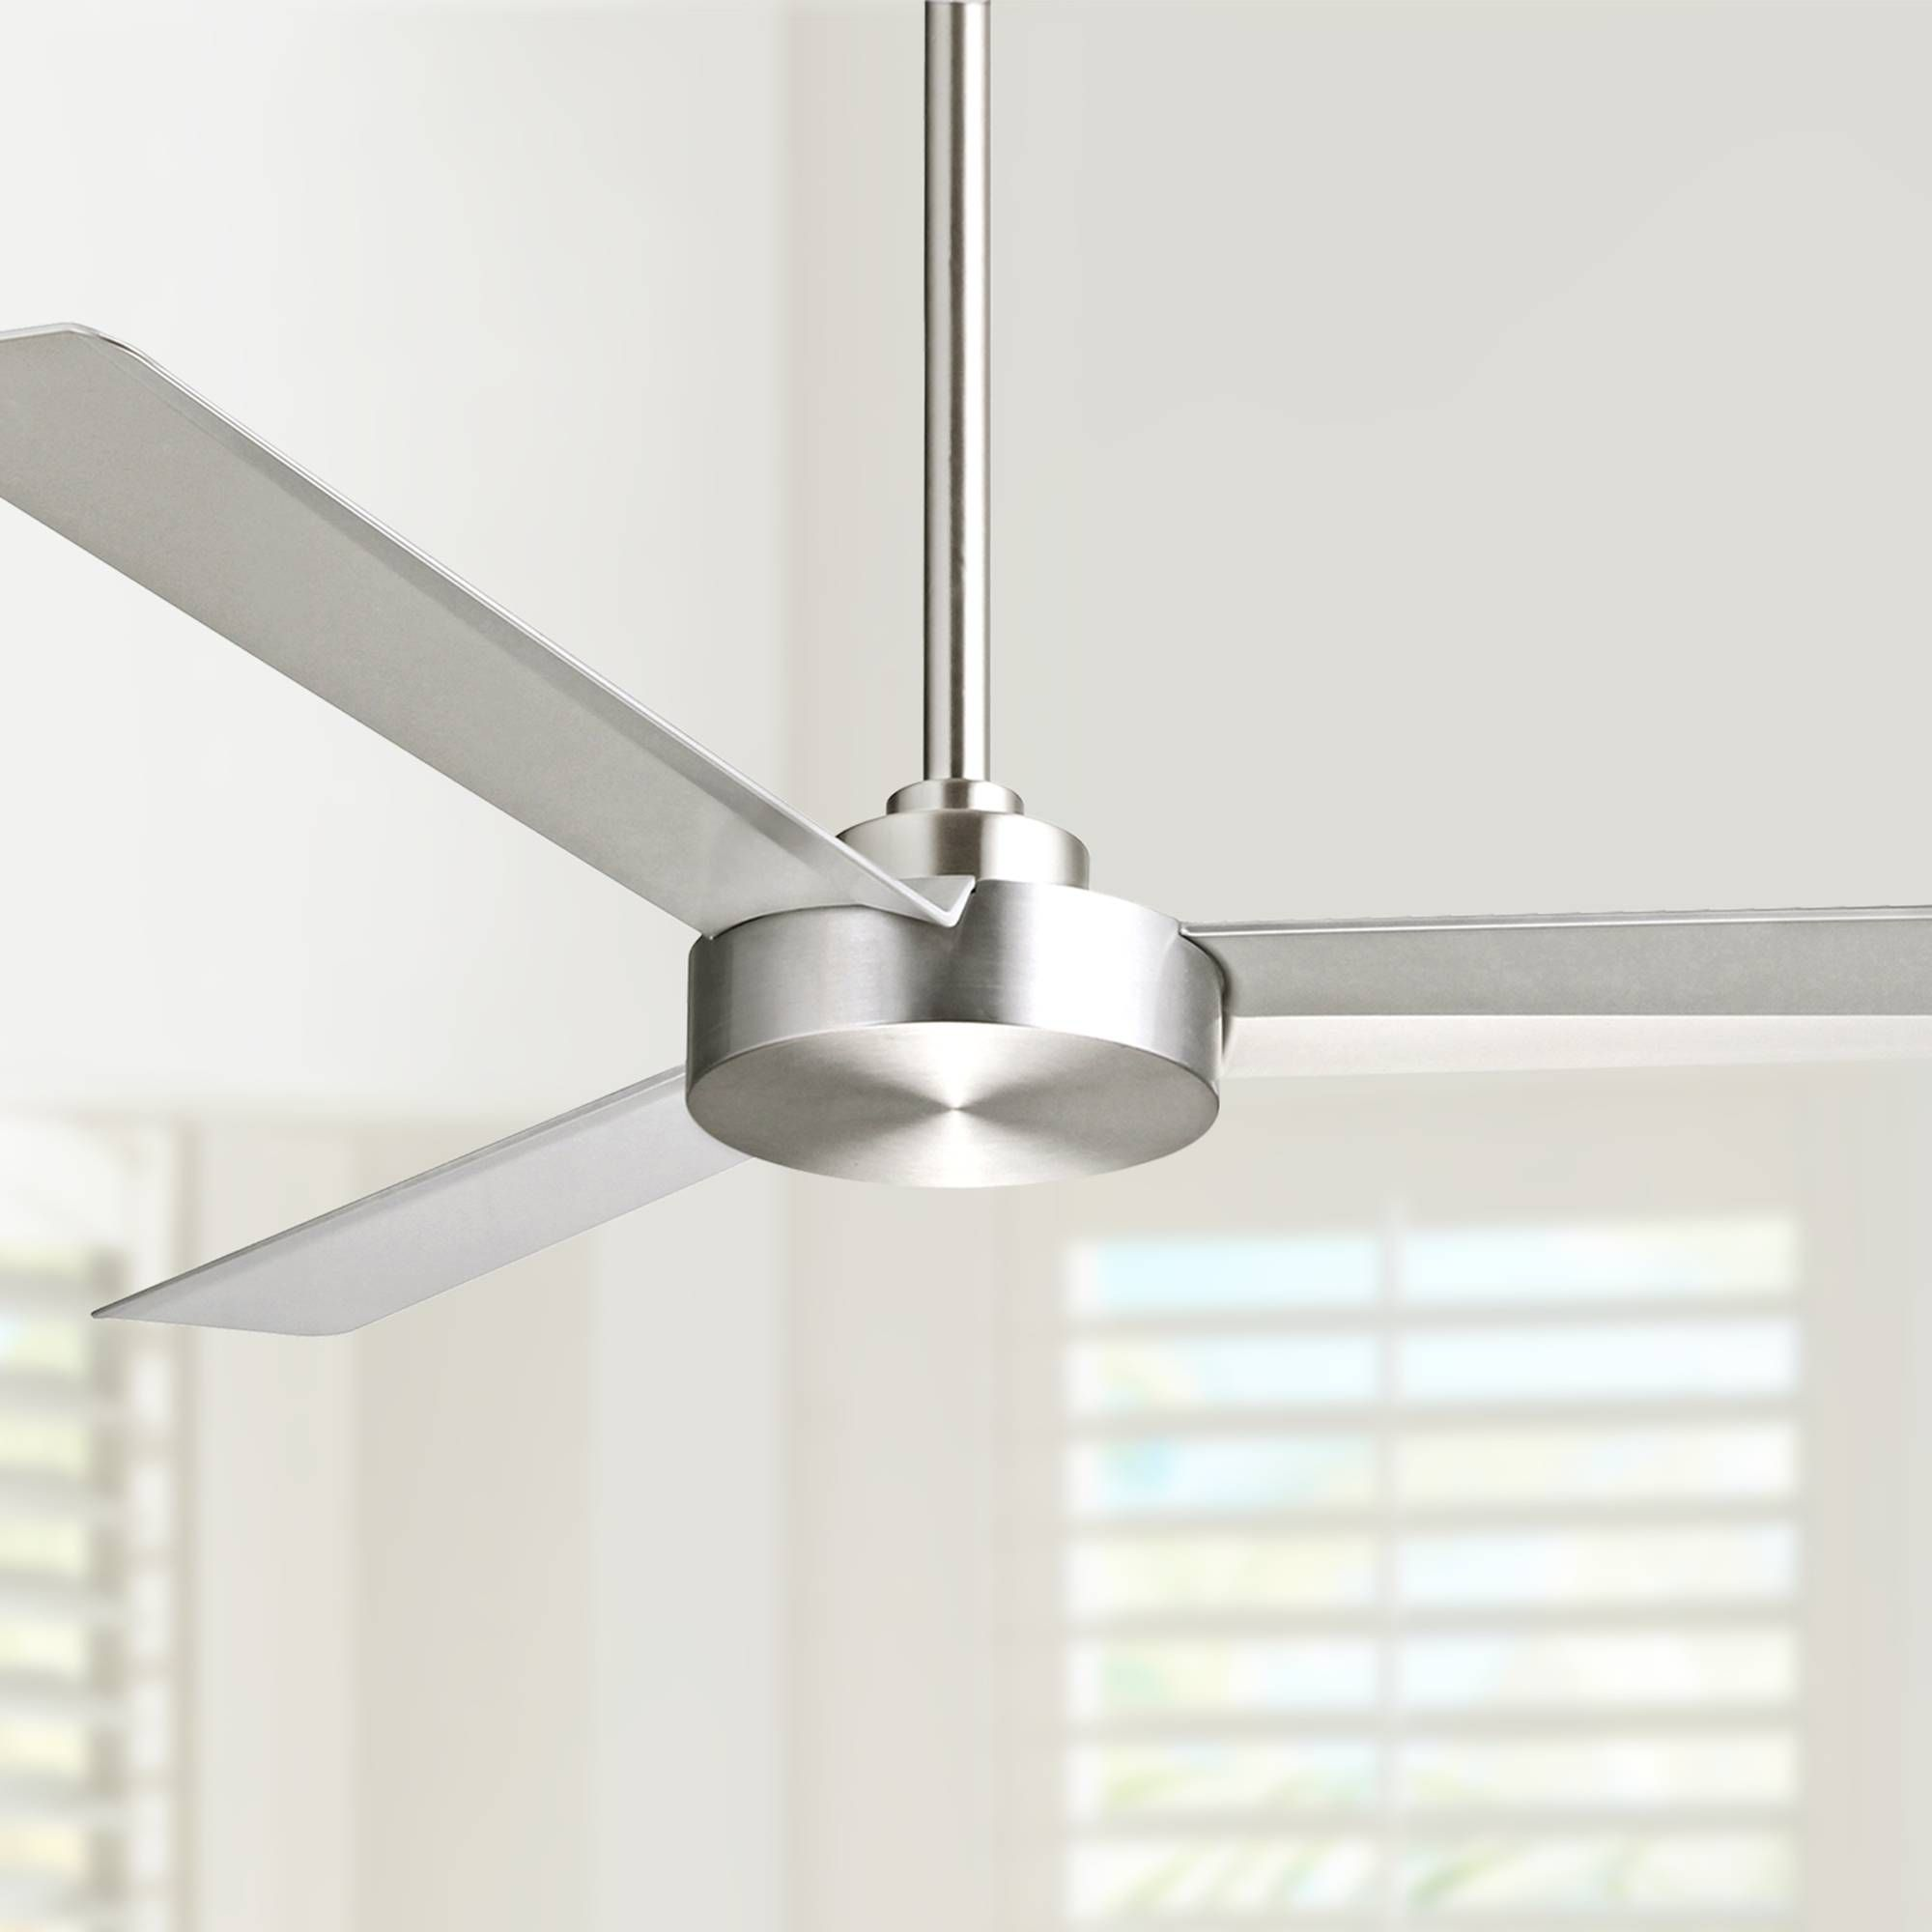 fans zq stainless furniture market ceiling comfortable light lamp smothery fresh with plastic lights lamps steel shell double plus fan pendant shades lightwith